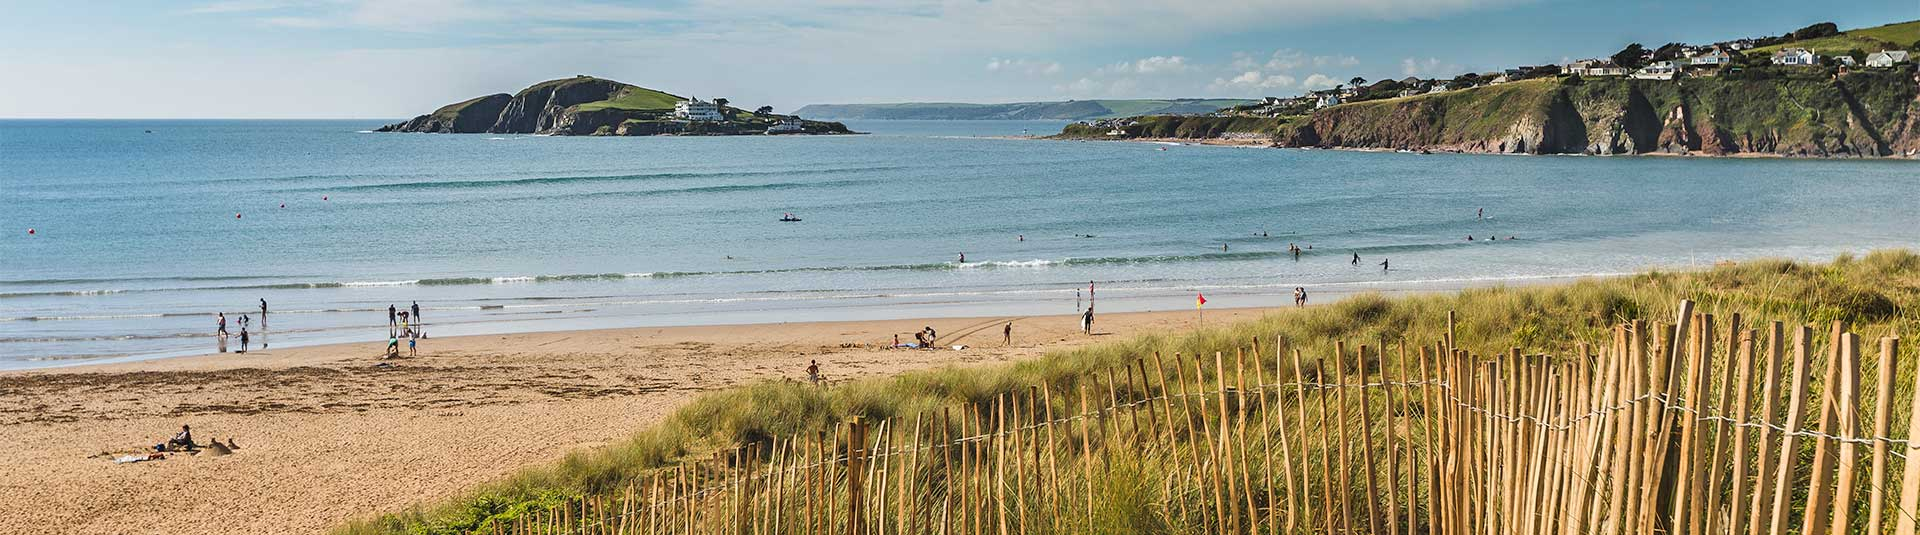 Holiday Cottages In South Devon By The Sea Sportstle Com